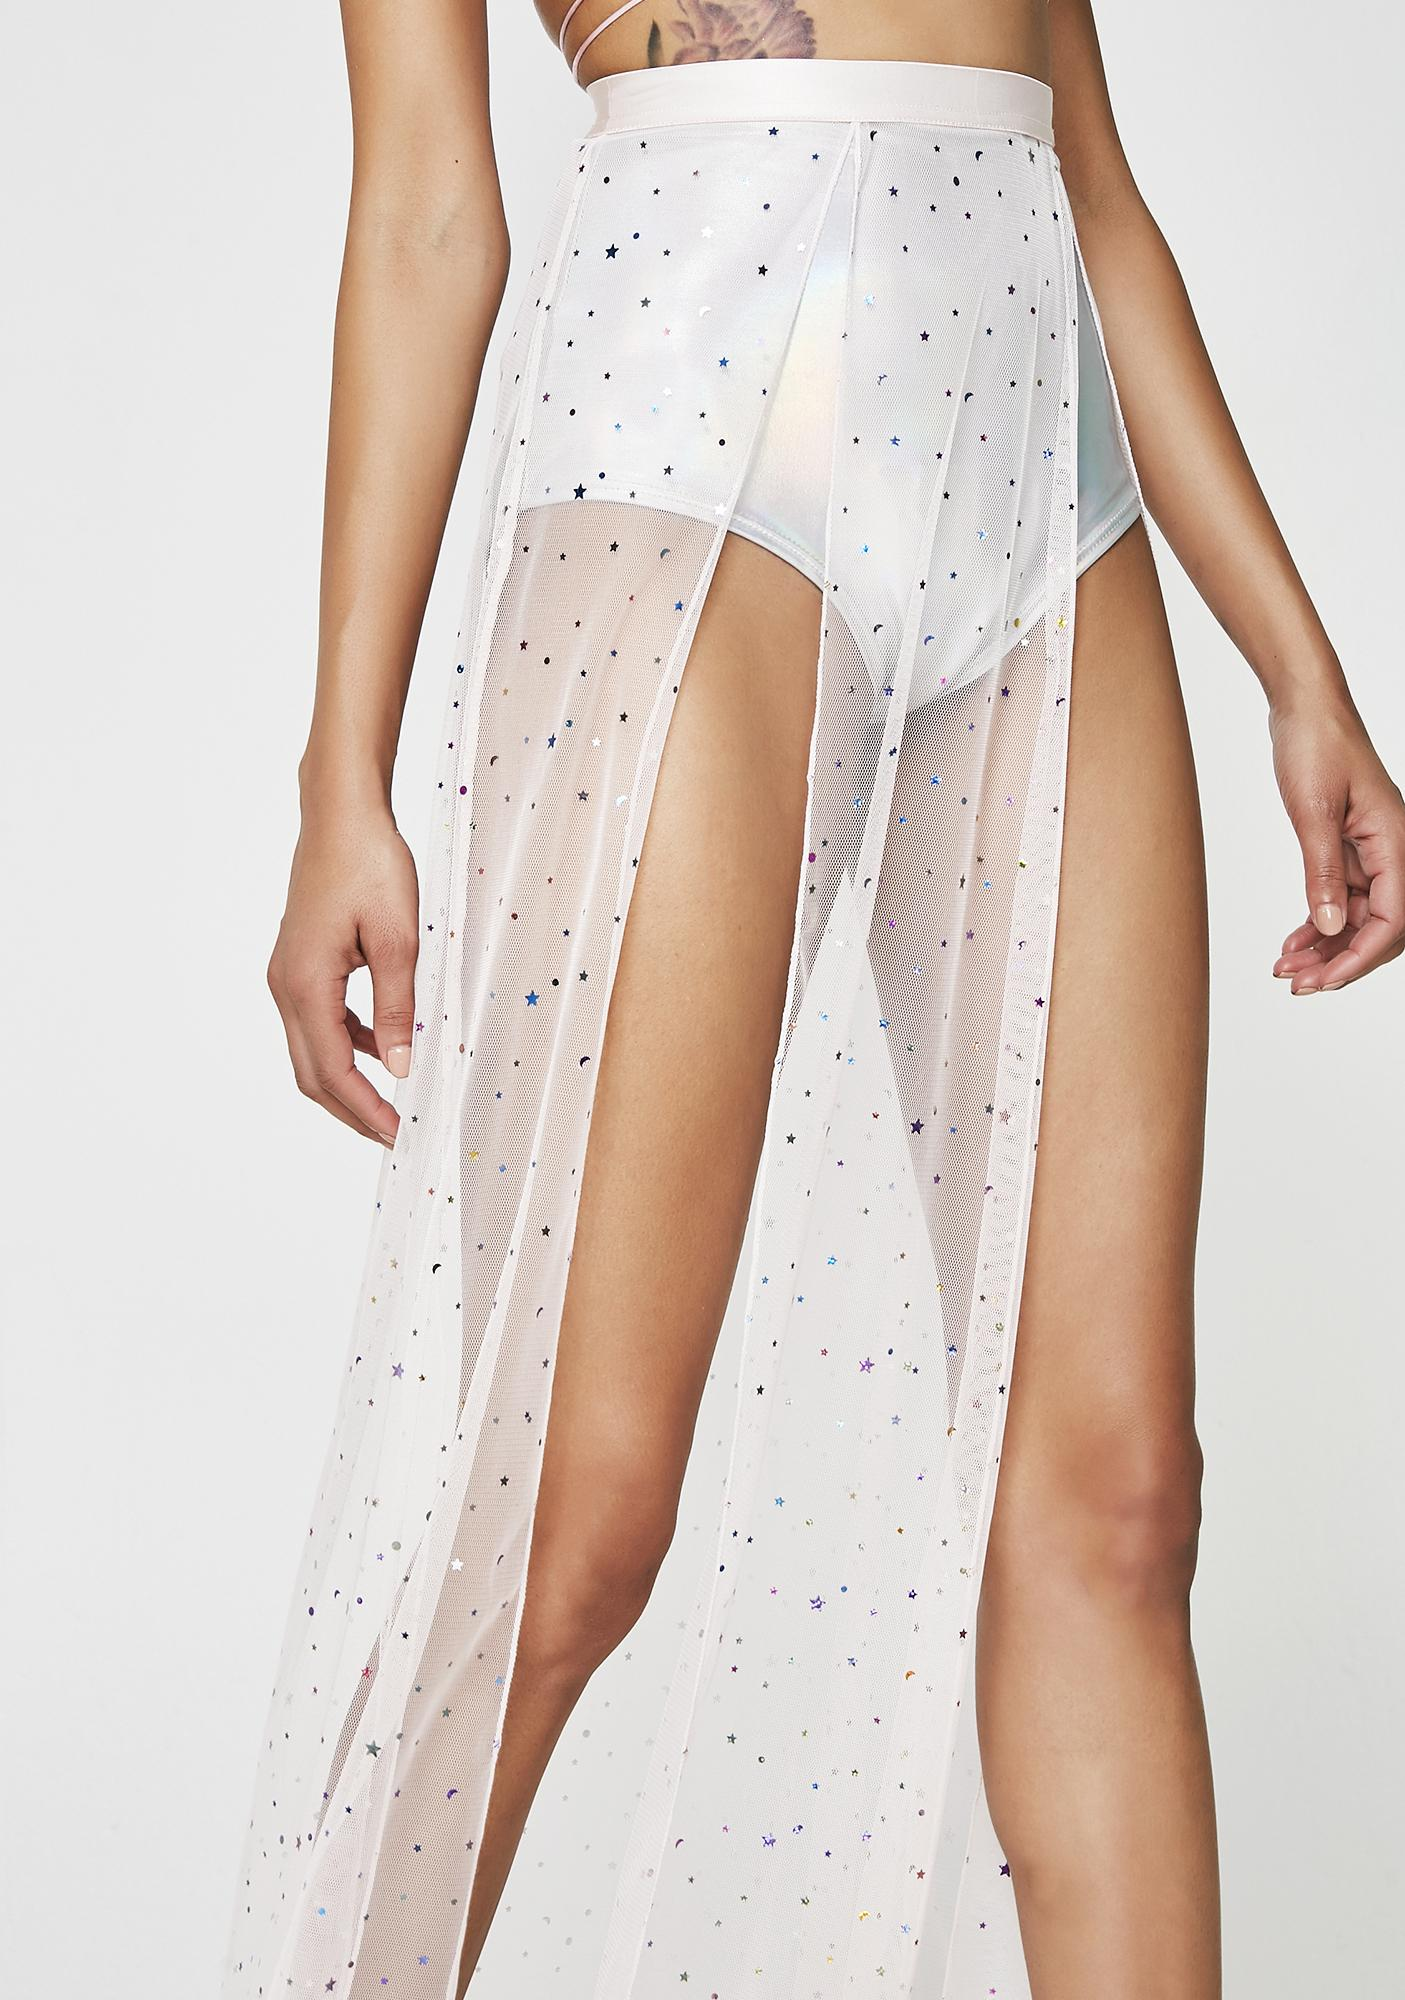 Club Exx Star Girl Sheer Maxi Skirt